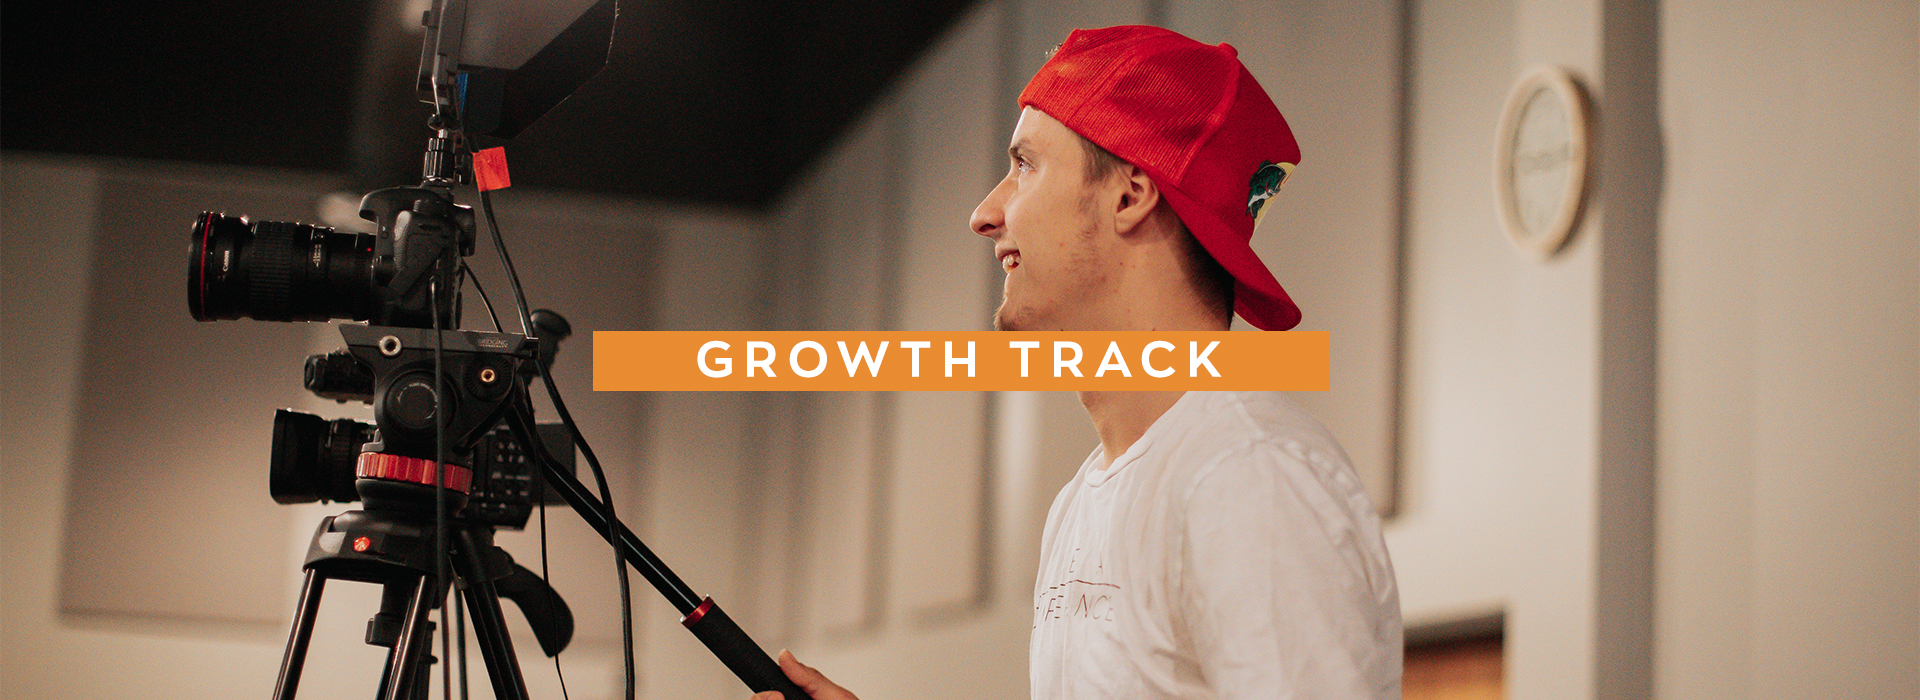 Growth Track Banner